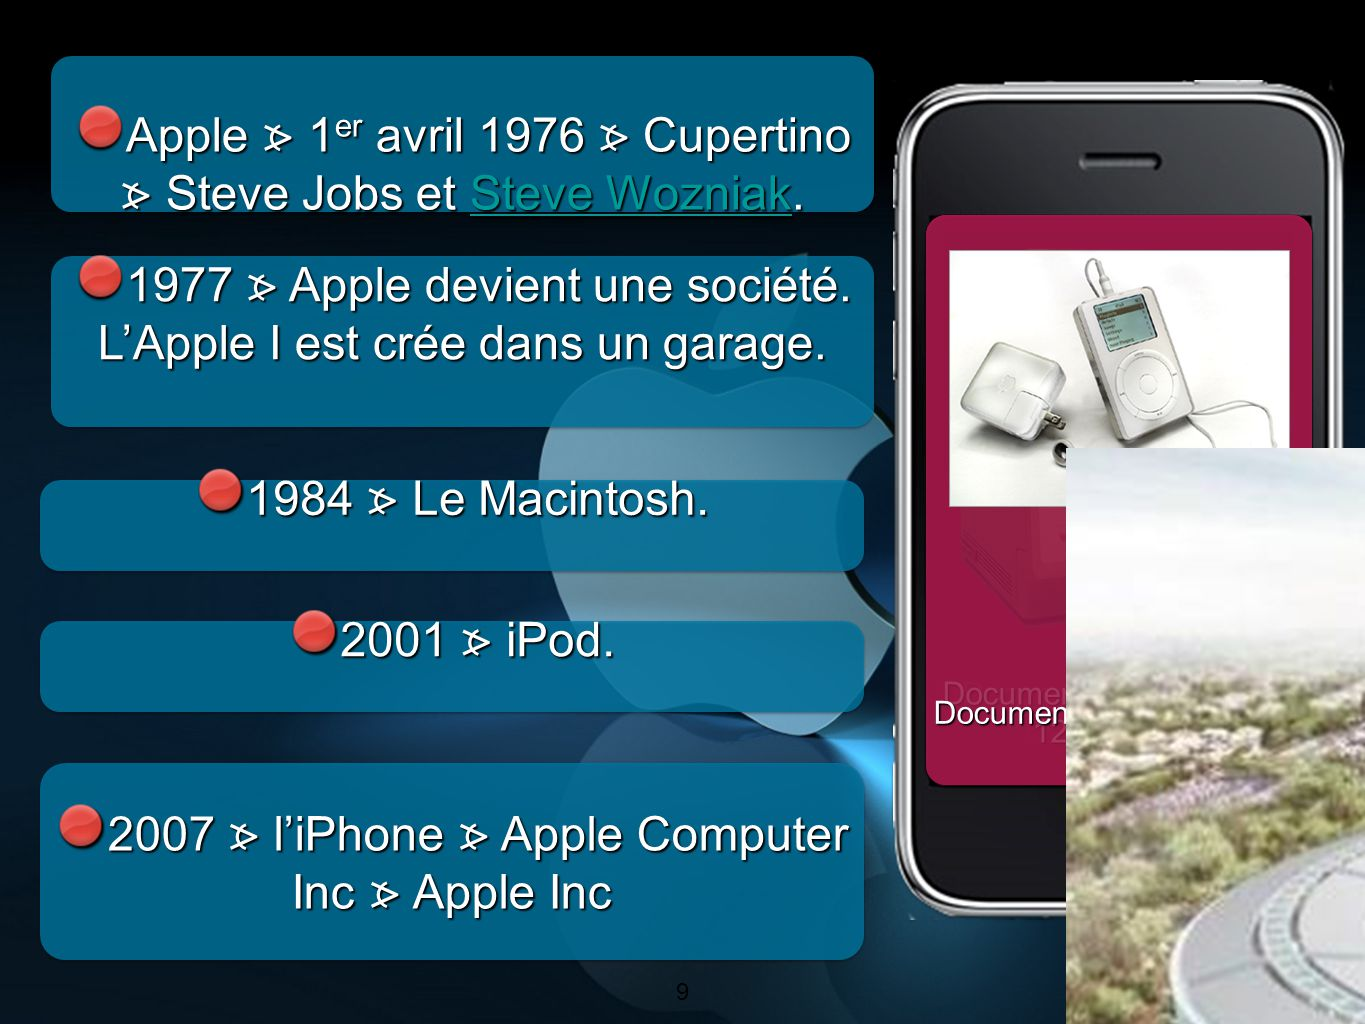 Apple ⦠ 1er avril 1976 ⦠ Cupertino ⦠ Steve Jobs et Steve Wozniak.